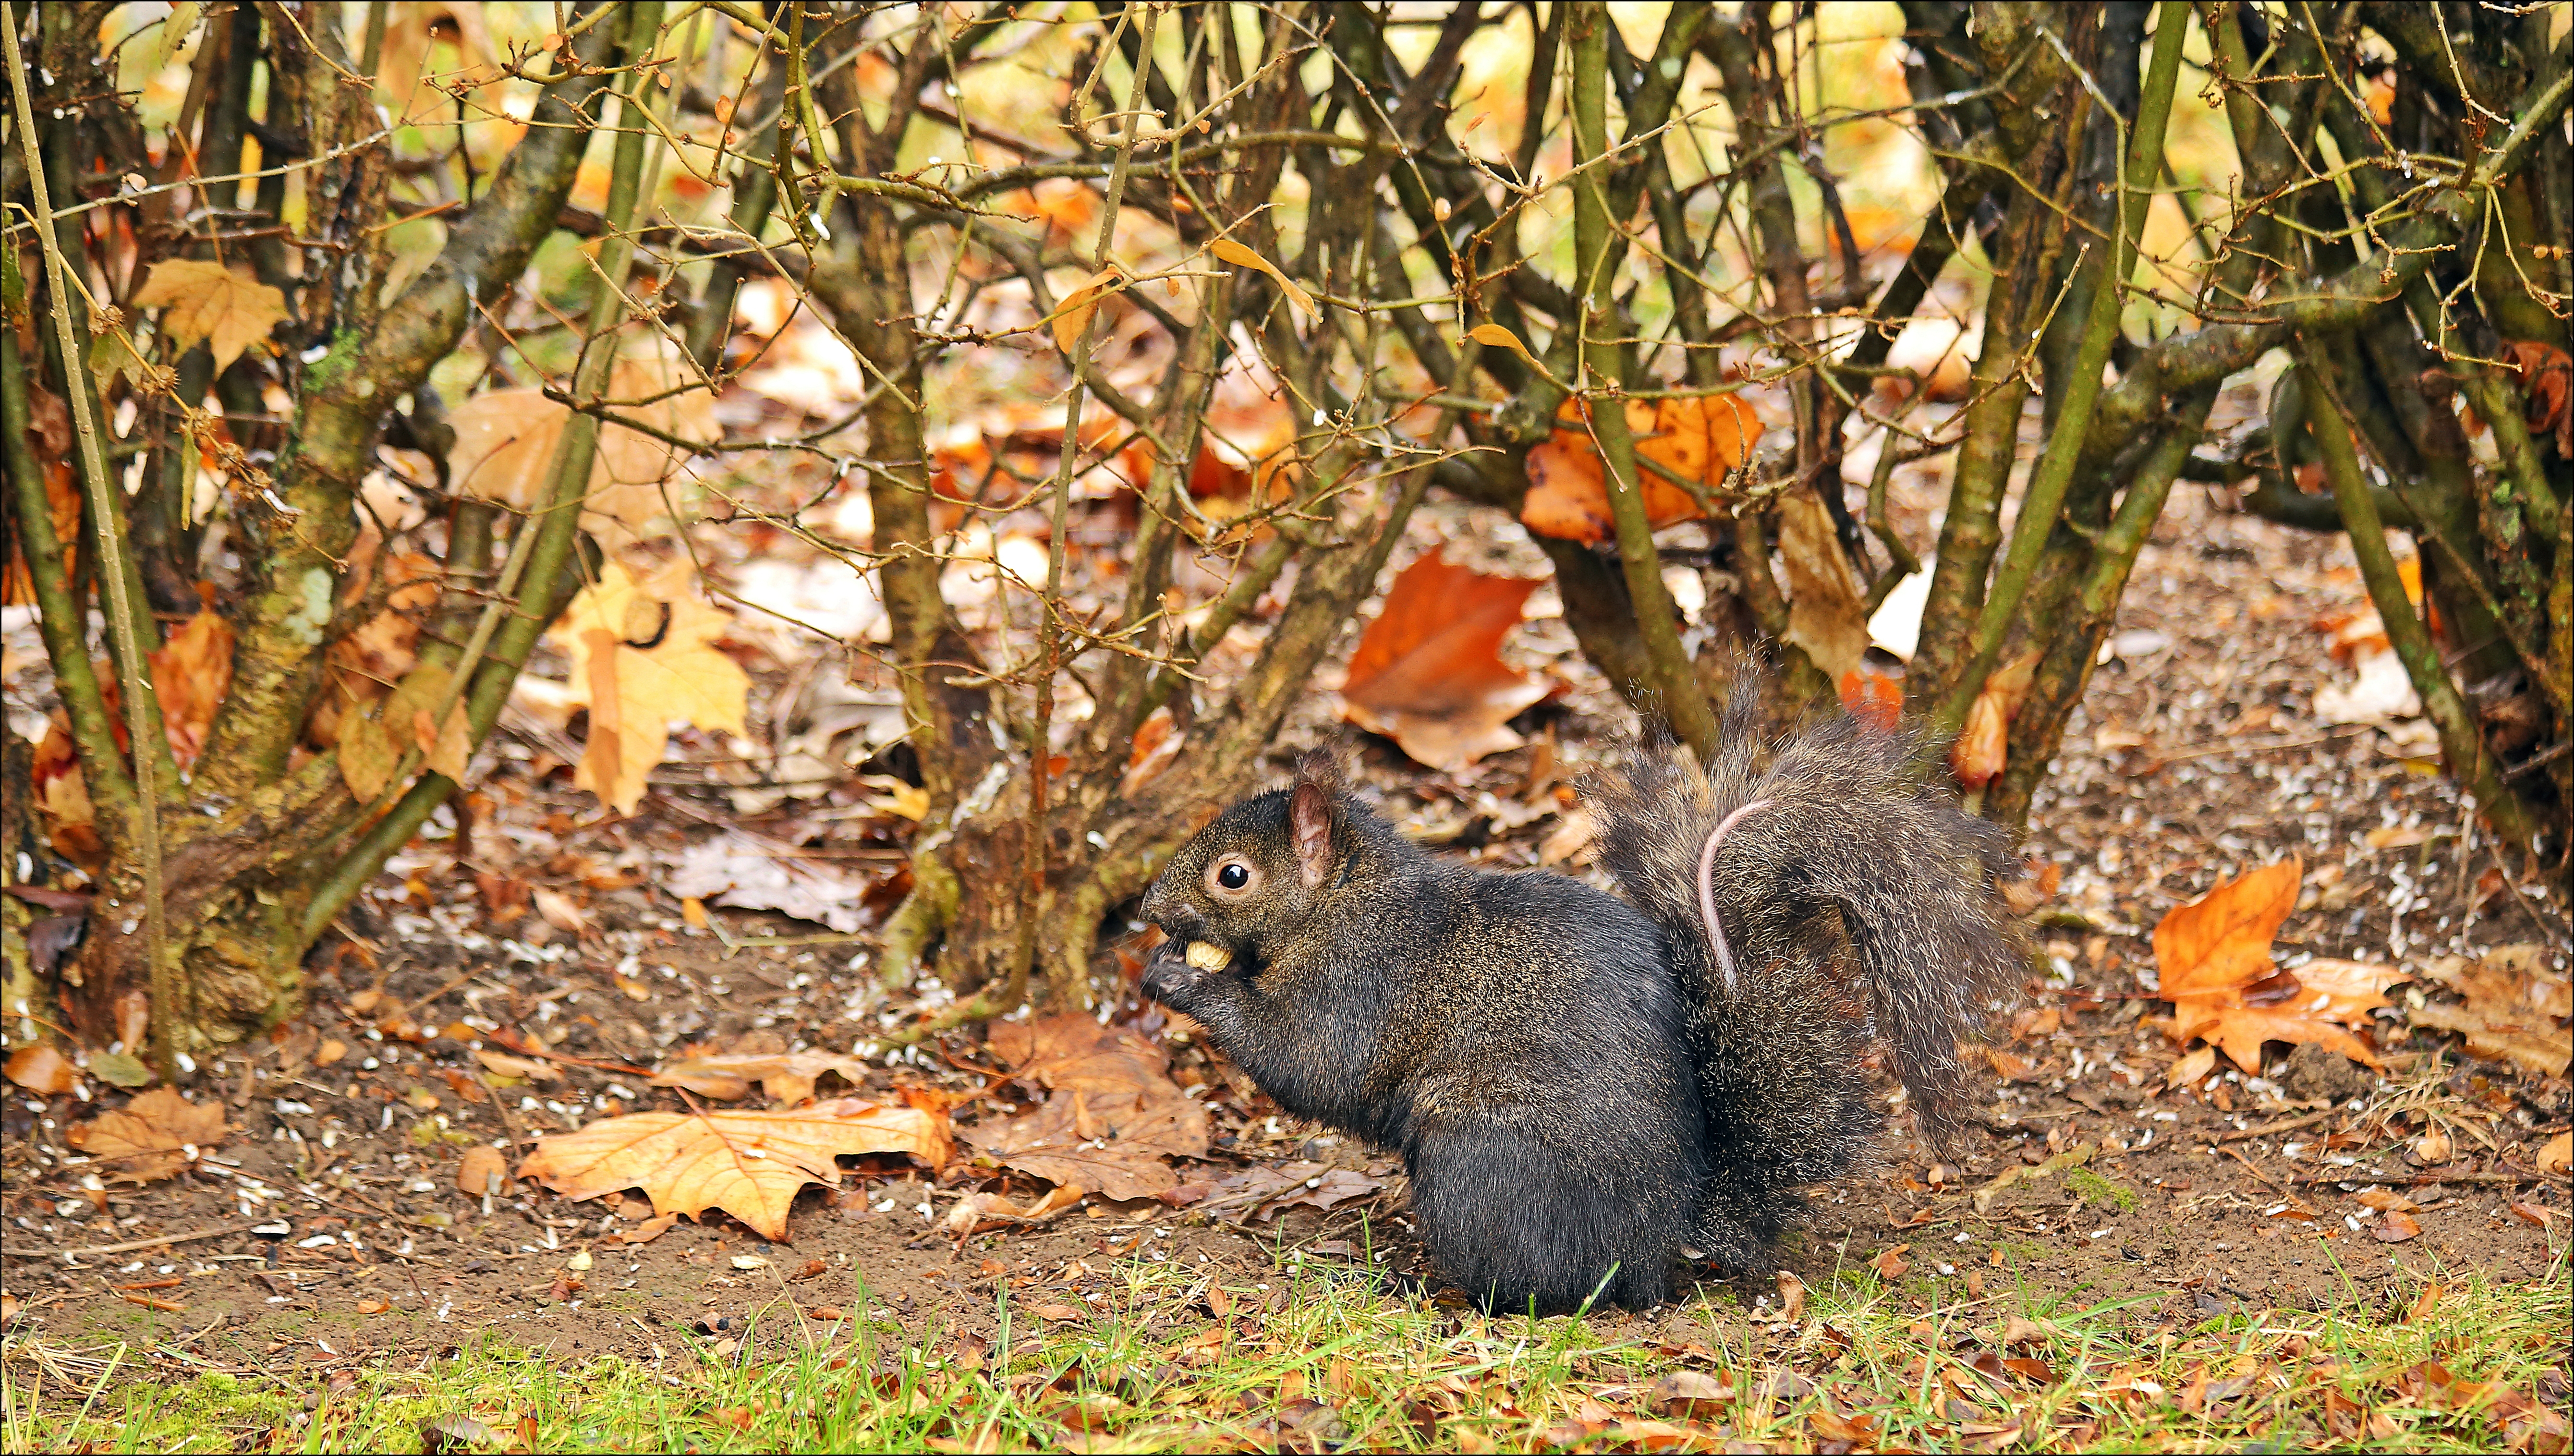 This Little Guy Is Very Friendly But Has Lost His Tail Fur somehow. black, canon, squirrel, 60d. buy photo